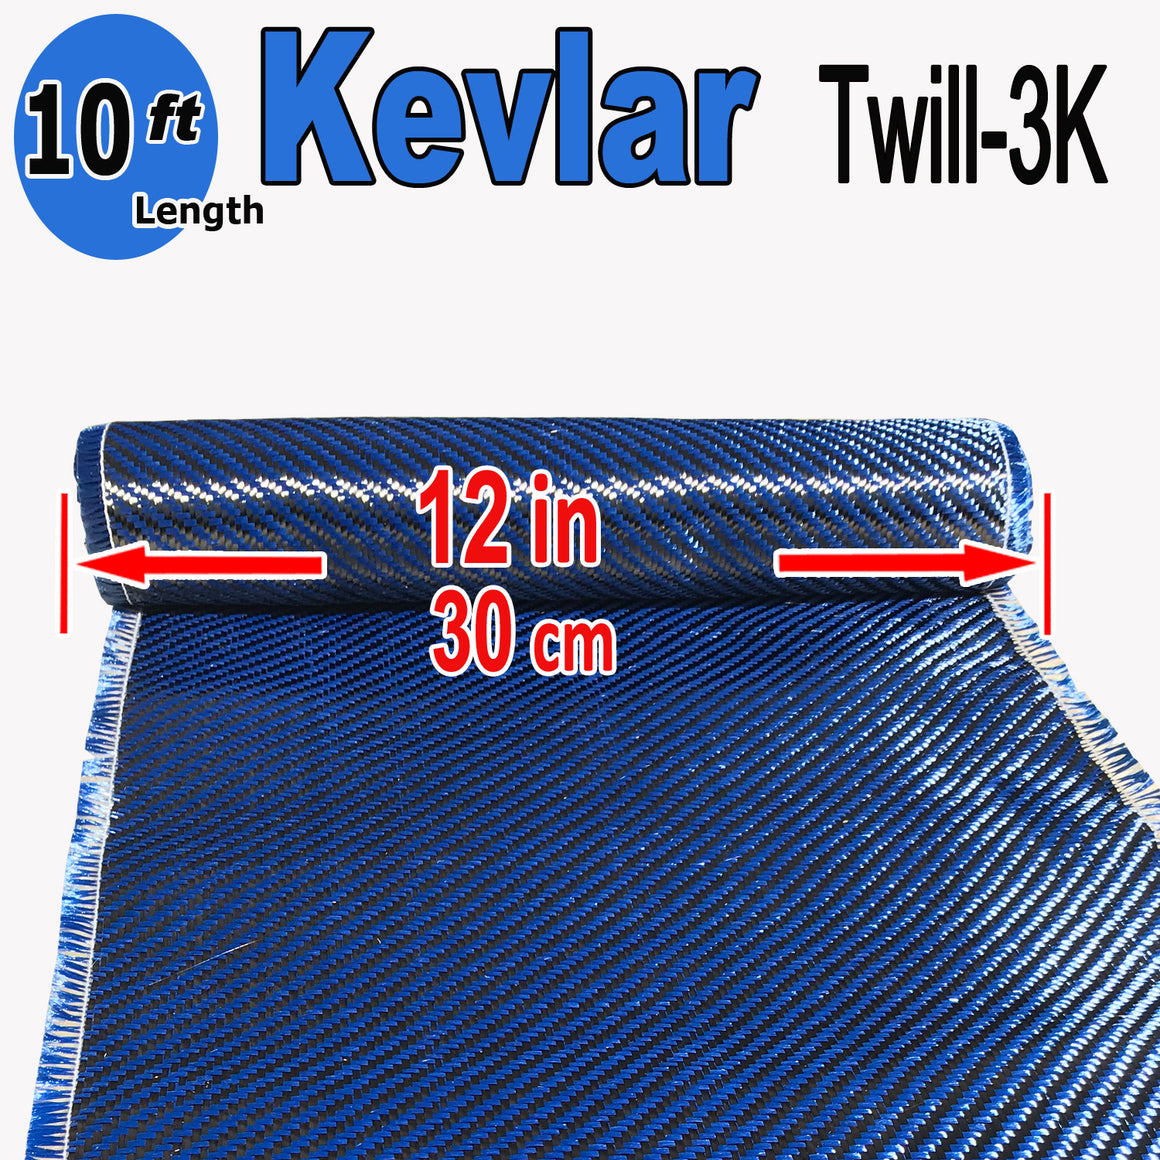 KEVLAR ARAMID  Fabric - 12 in x 10 ft - Twill  - 240g/m2 - 3K TOW (Blue)